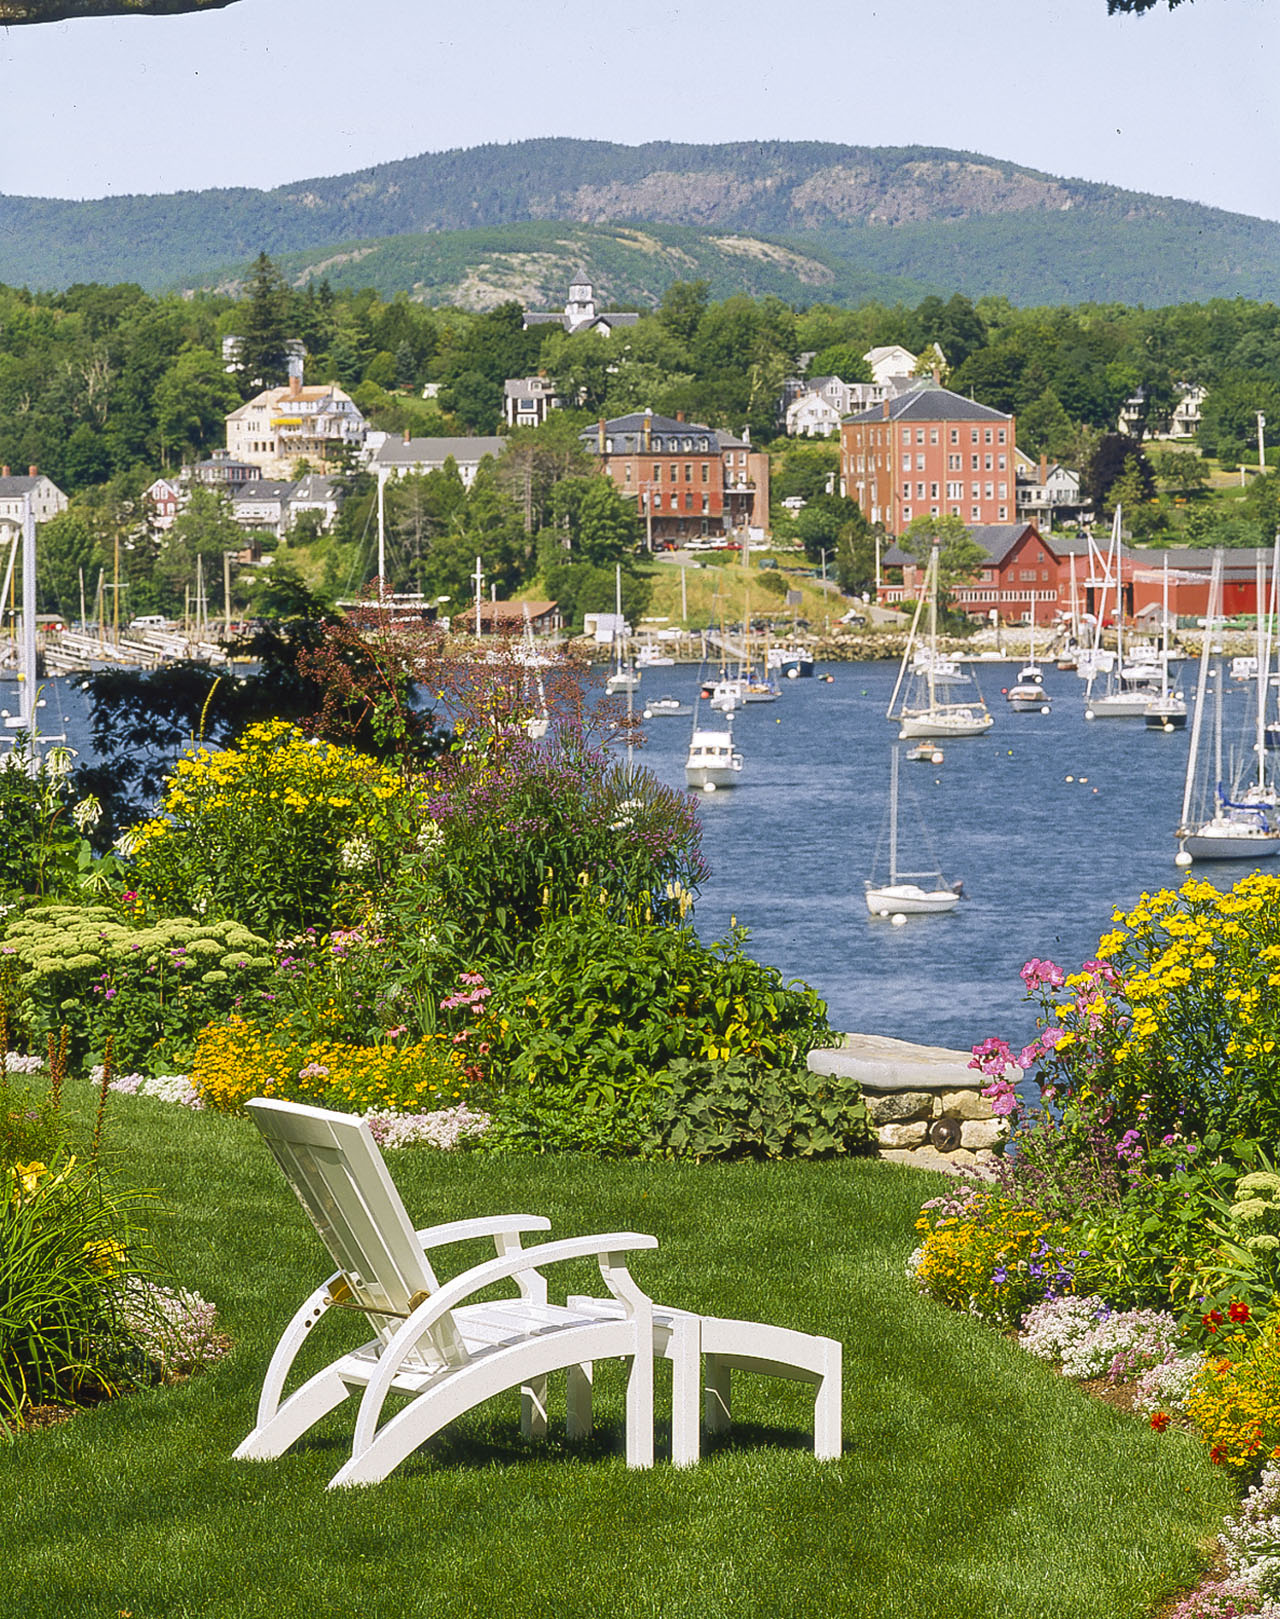 1 Sea Street, located in Rockport, Maine